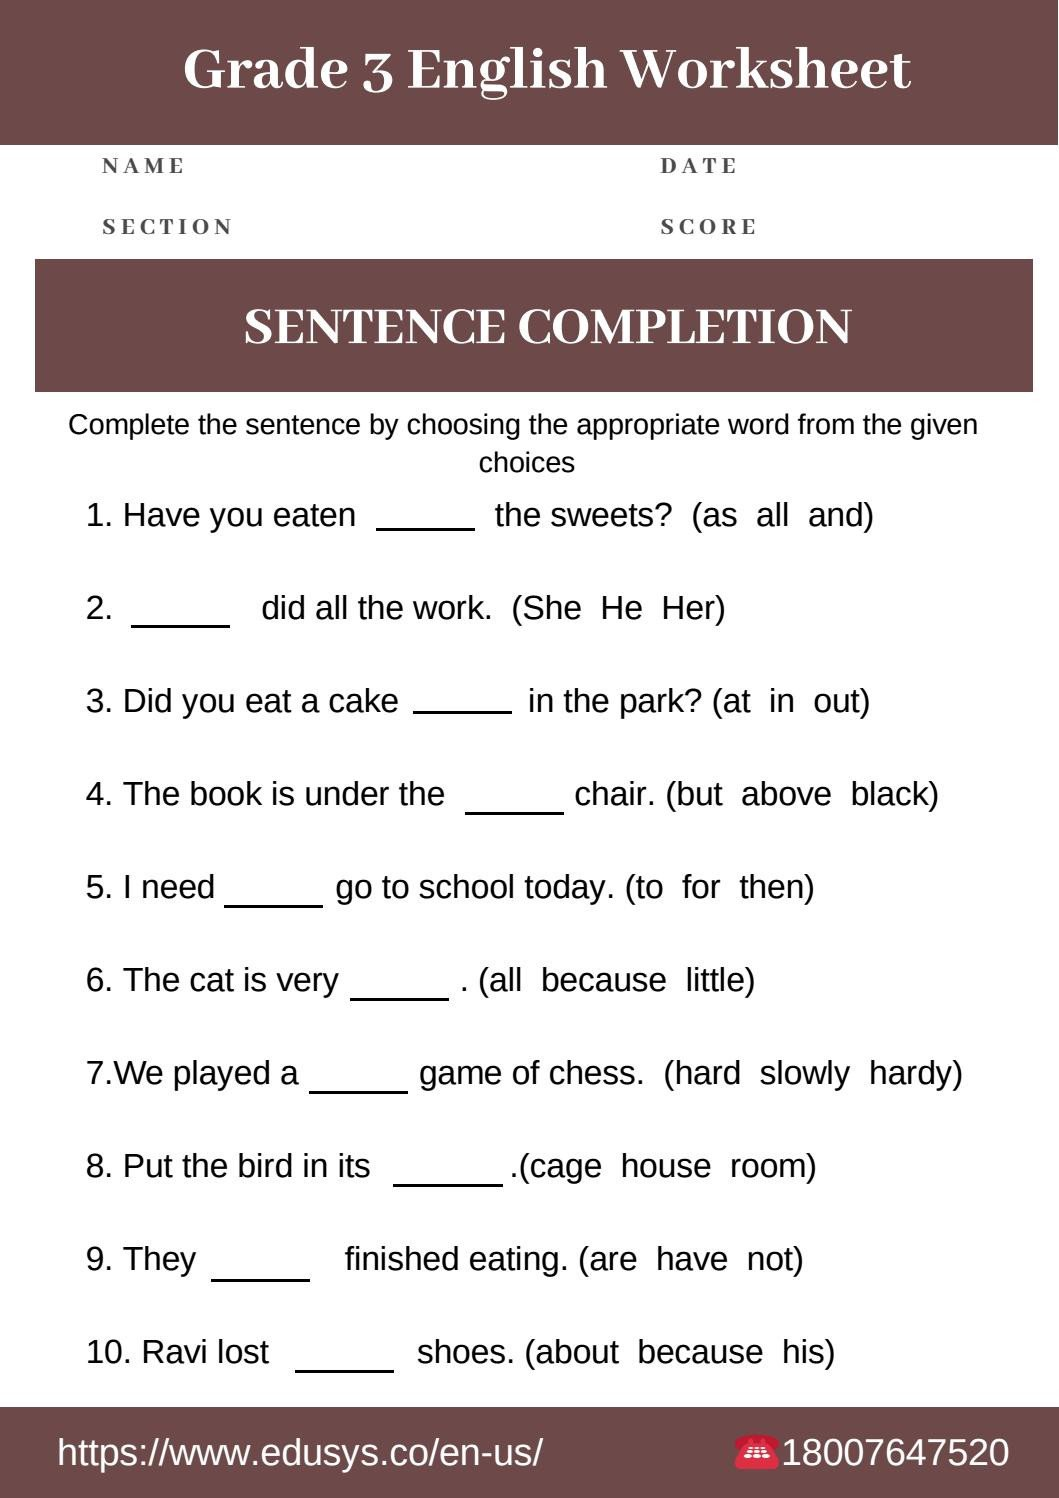 Grammar Worksheets 3rd Graders 3rd Grade English Grammar Worksheet Free Pdf by Nithya issuu